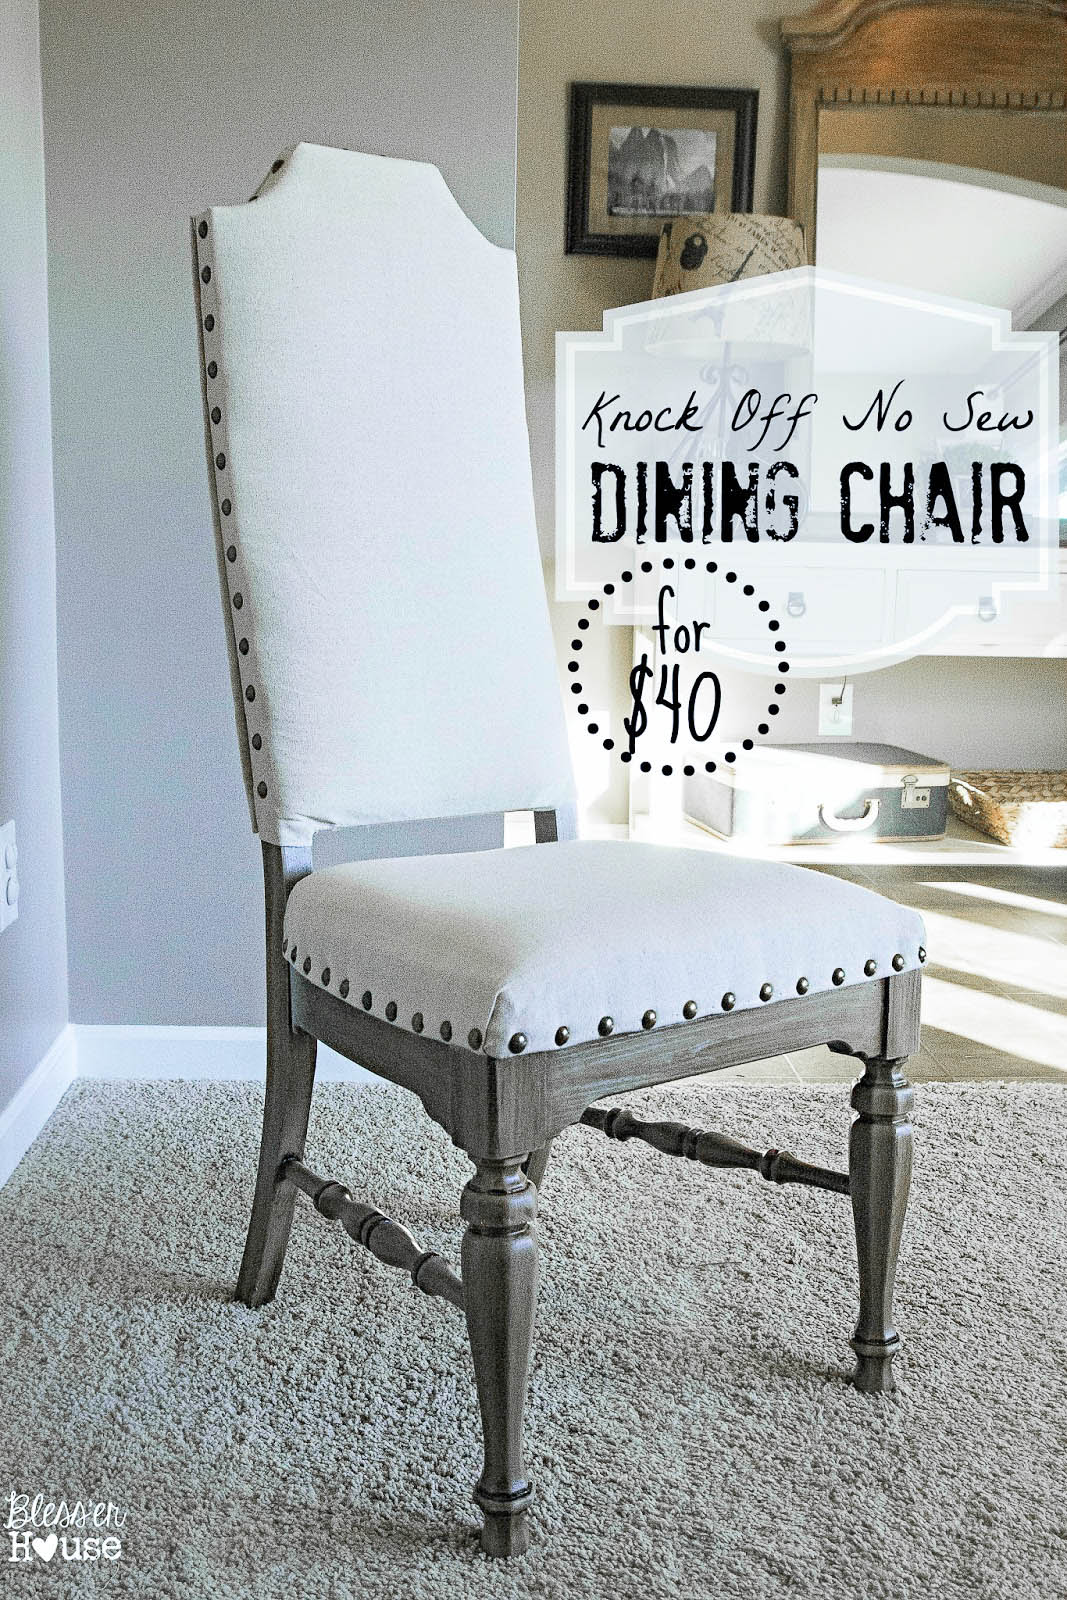 How To Create Pottery Barn And Restoration Hardware Knock Off No Sew Dining  Chairs Using 1970s Castoff Chairs.